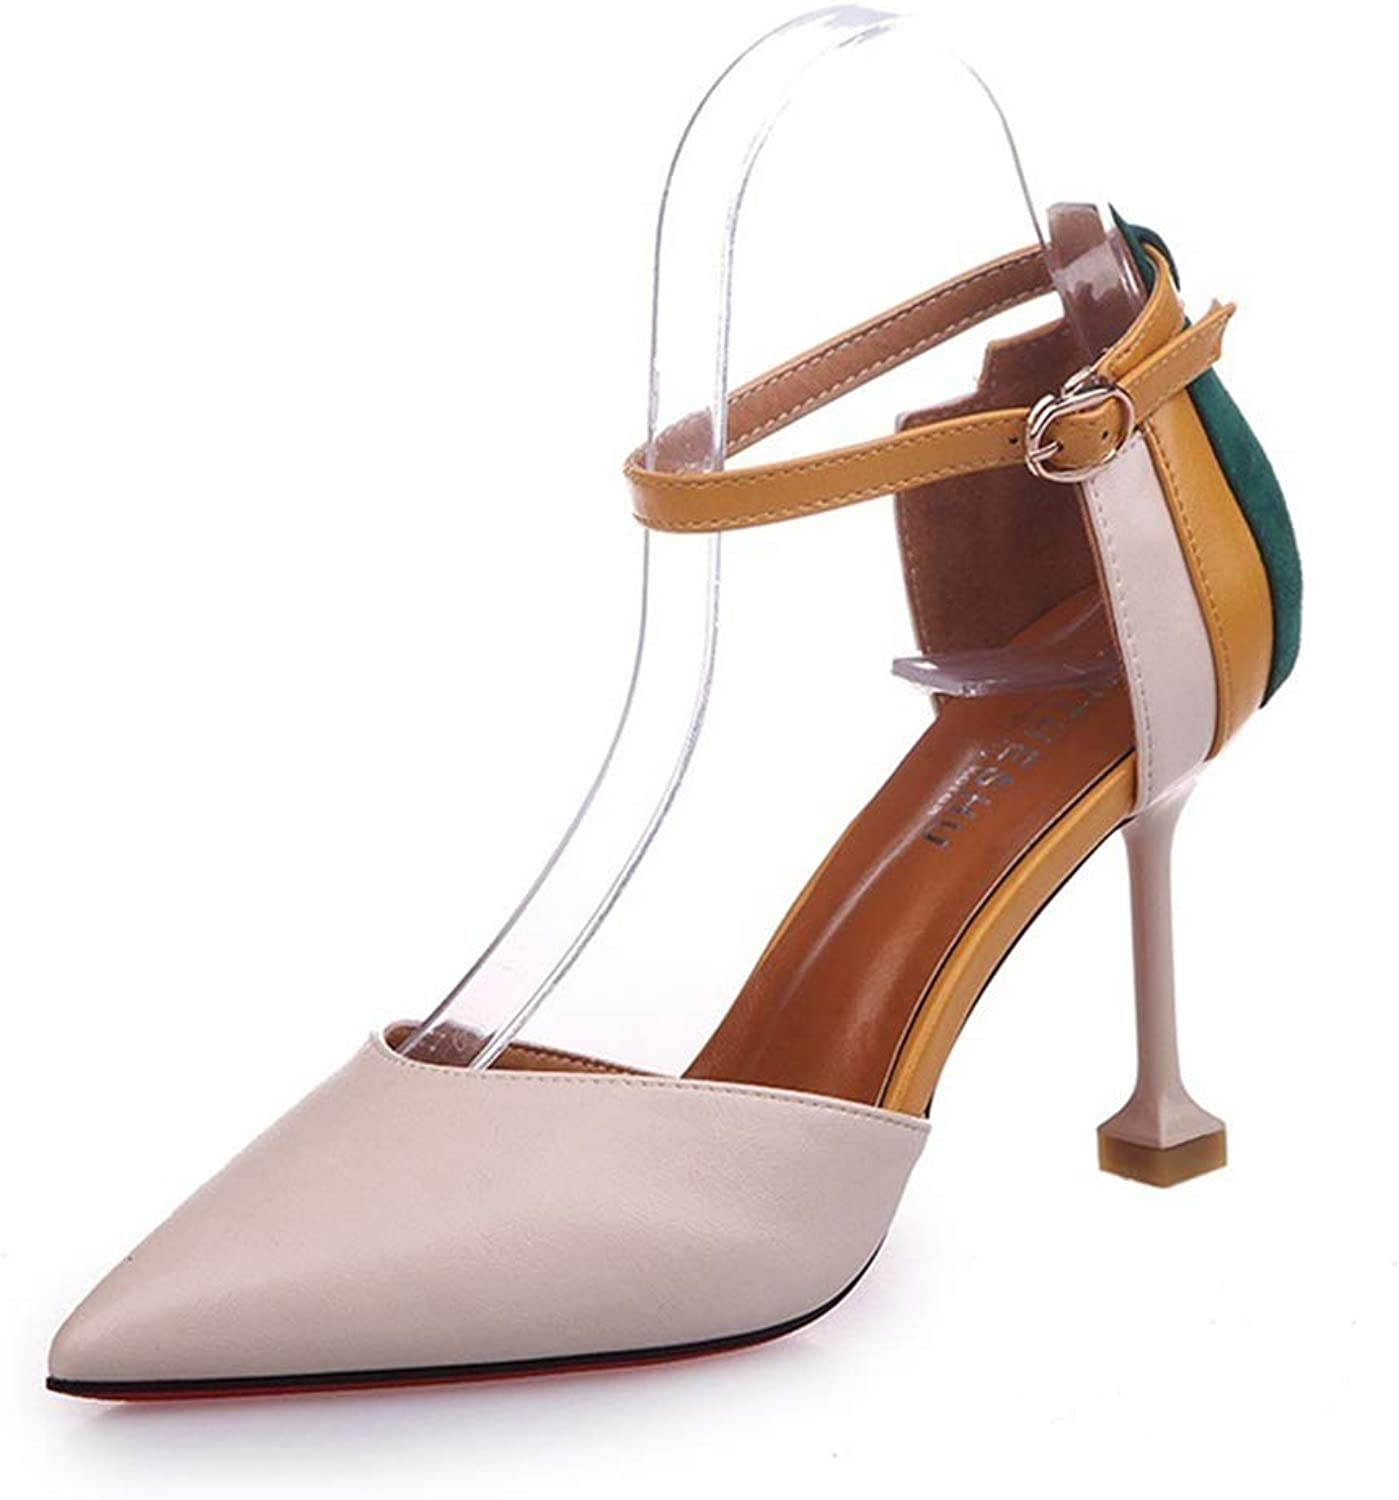 HEDDK Women Sandals Buckle Sexy High Heel Sandals Ladies Pointed Toe Pumps shoes Summer Beach shoes Plus Size 34-38